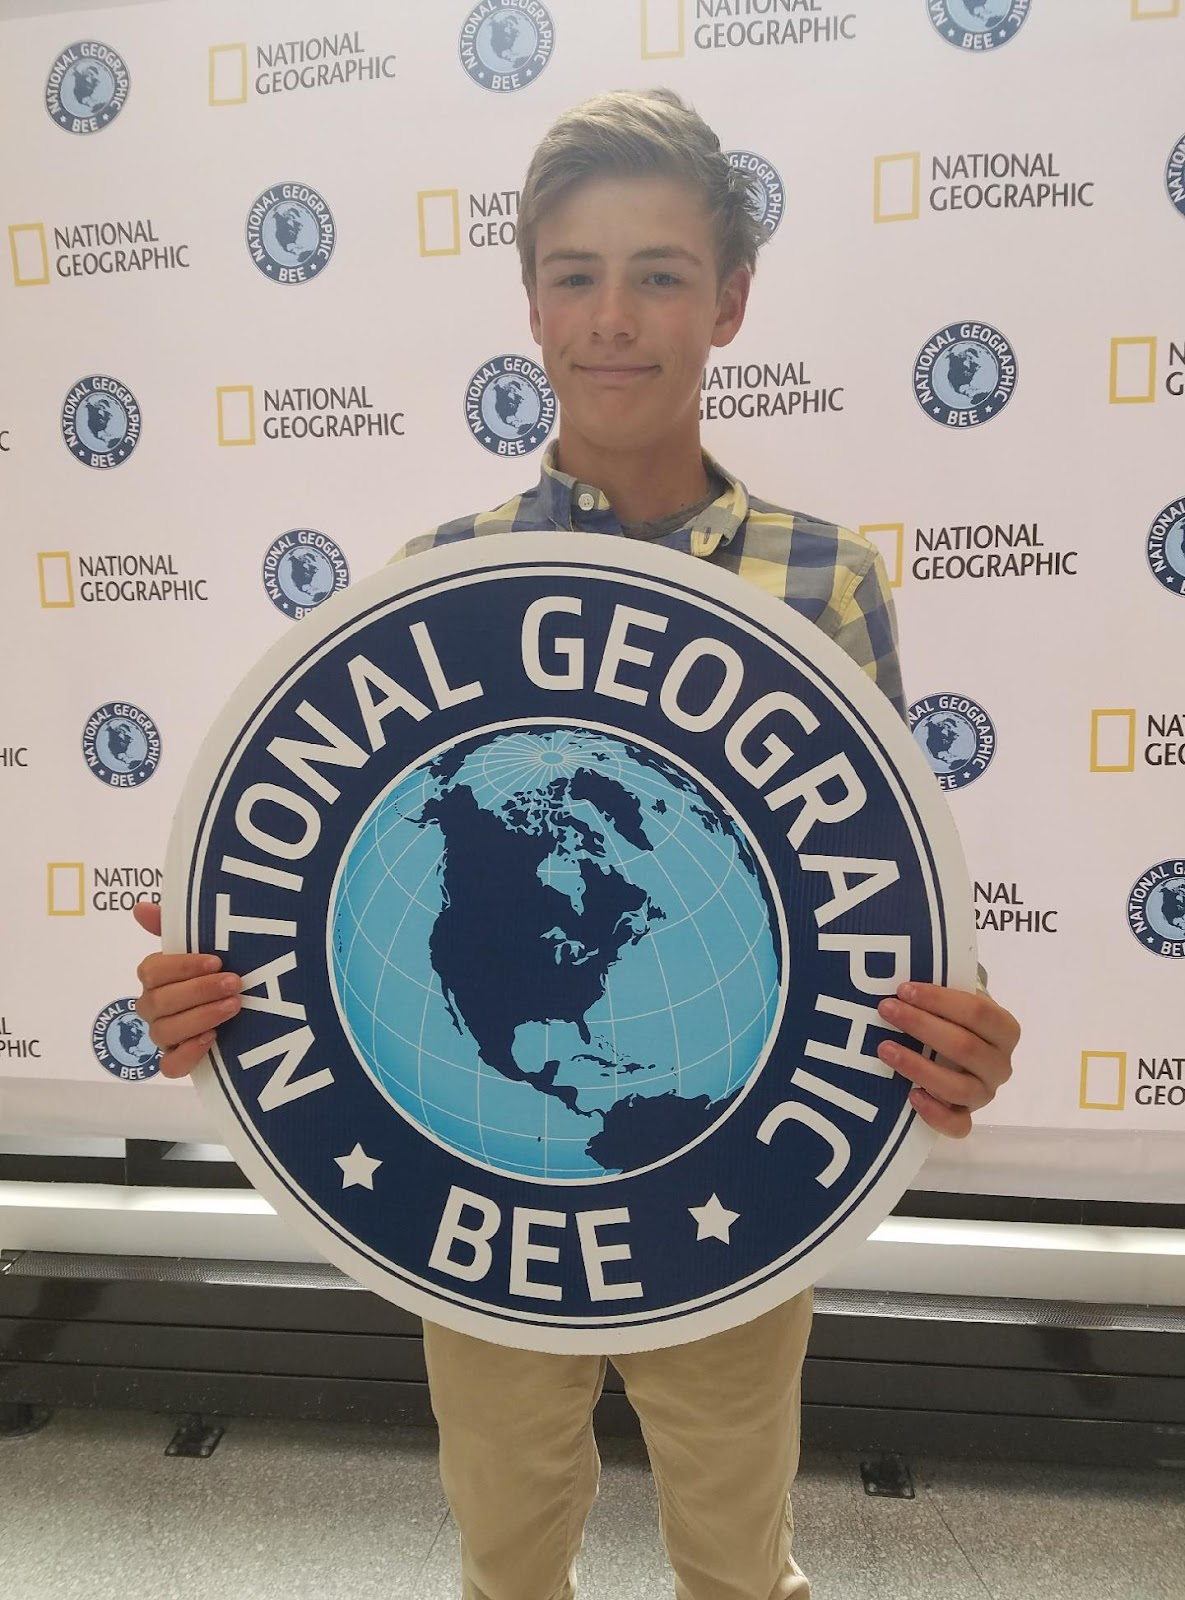 Alex Smith, qualifier for the National Geographic Bee